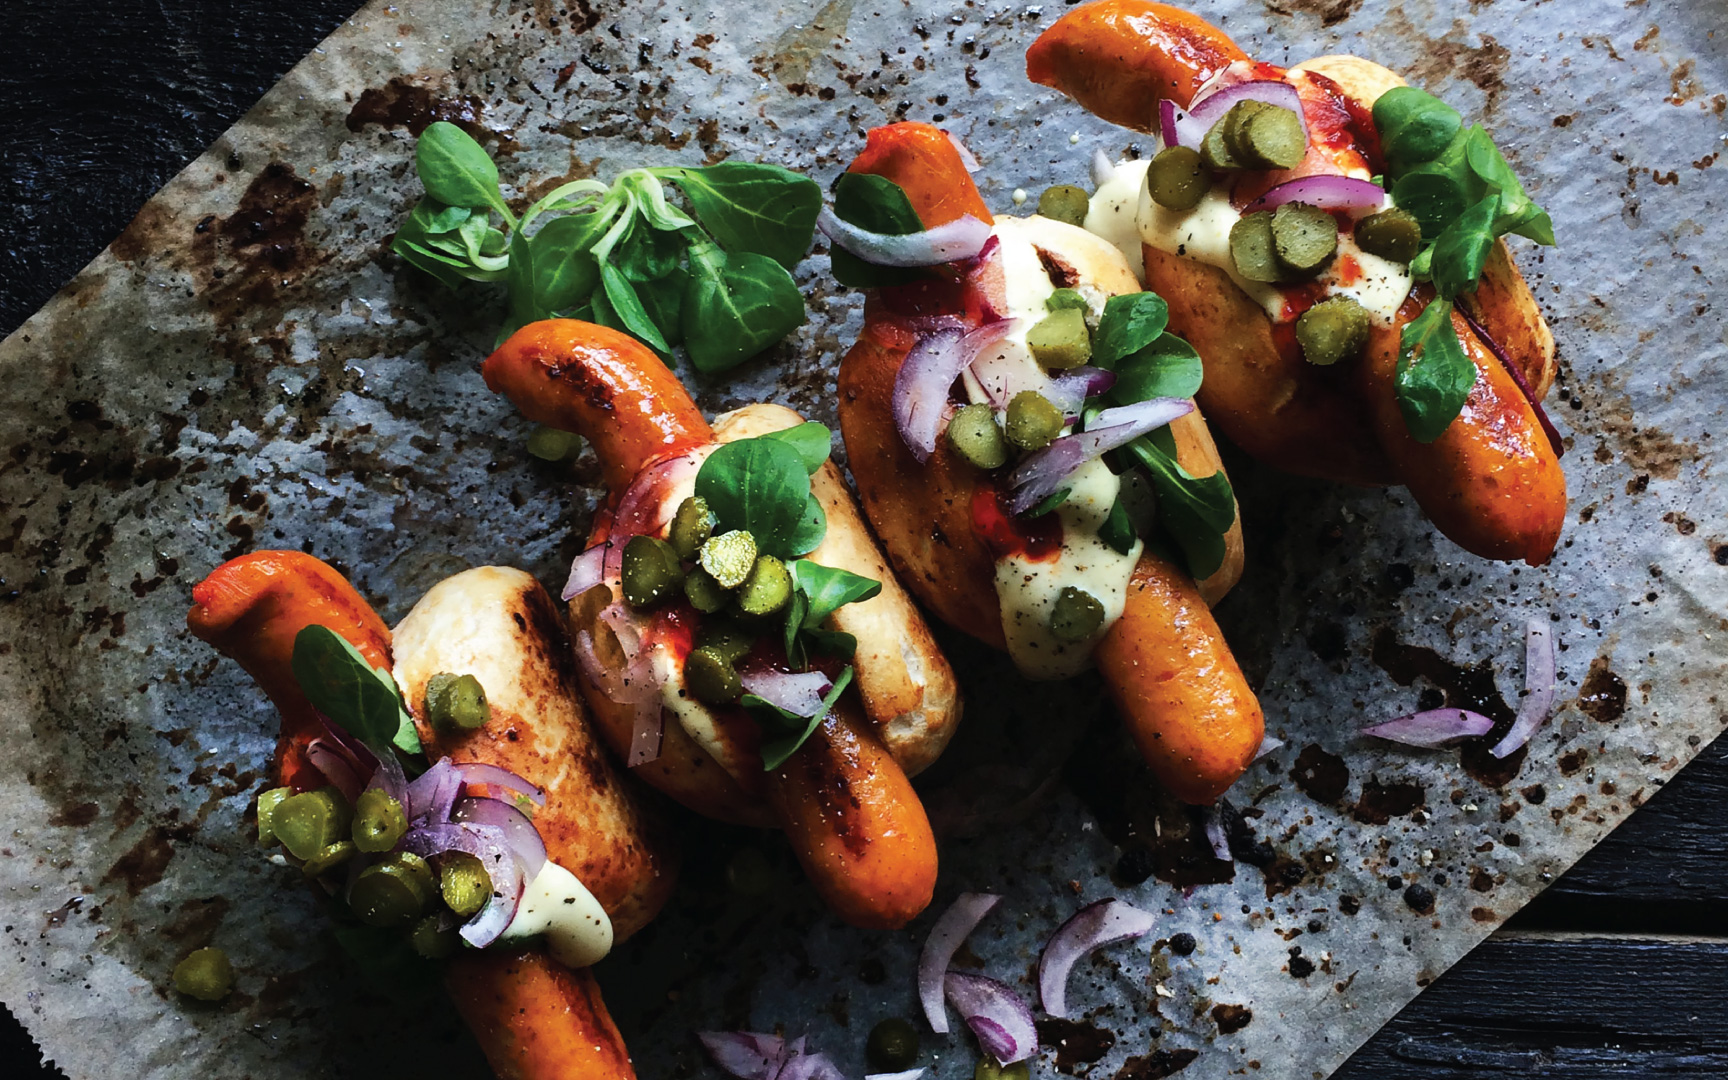 Plant-based hot dogs in buns with onions and pickles